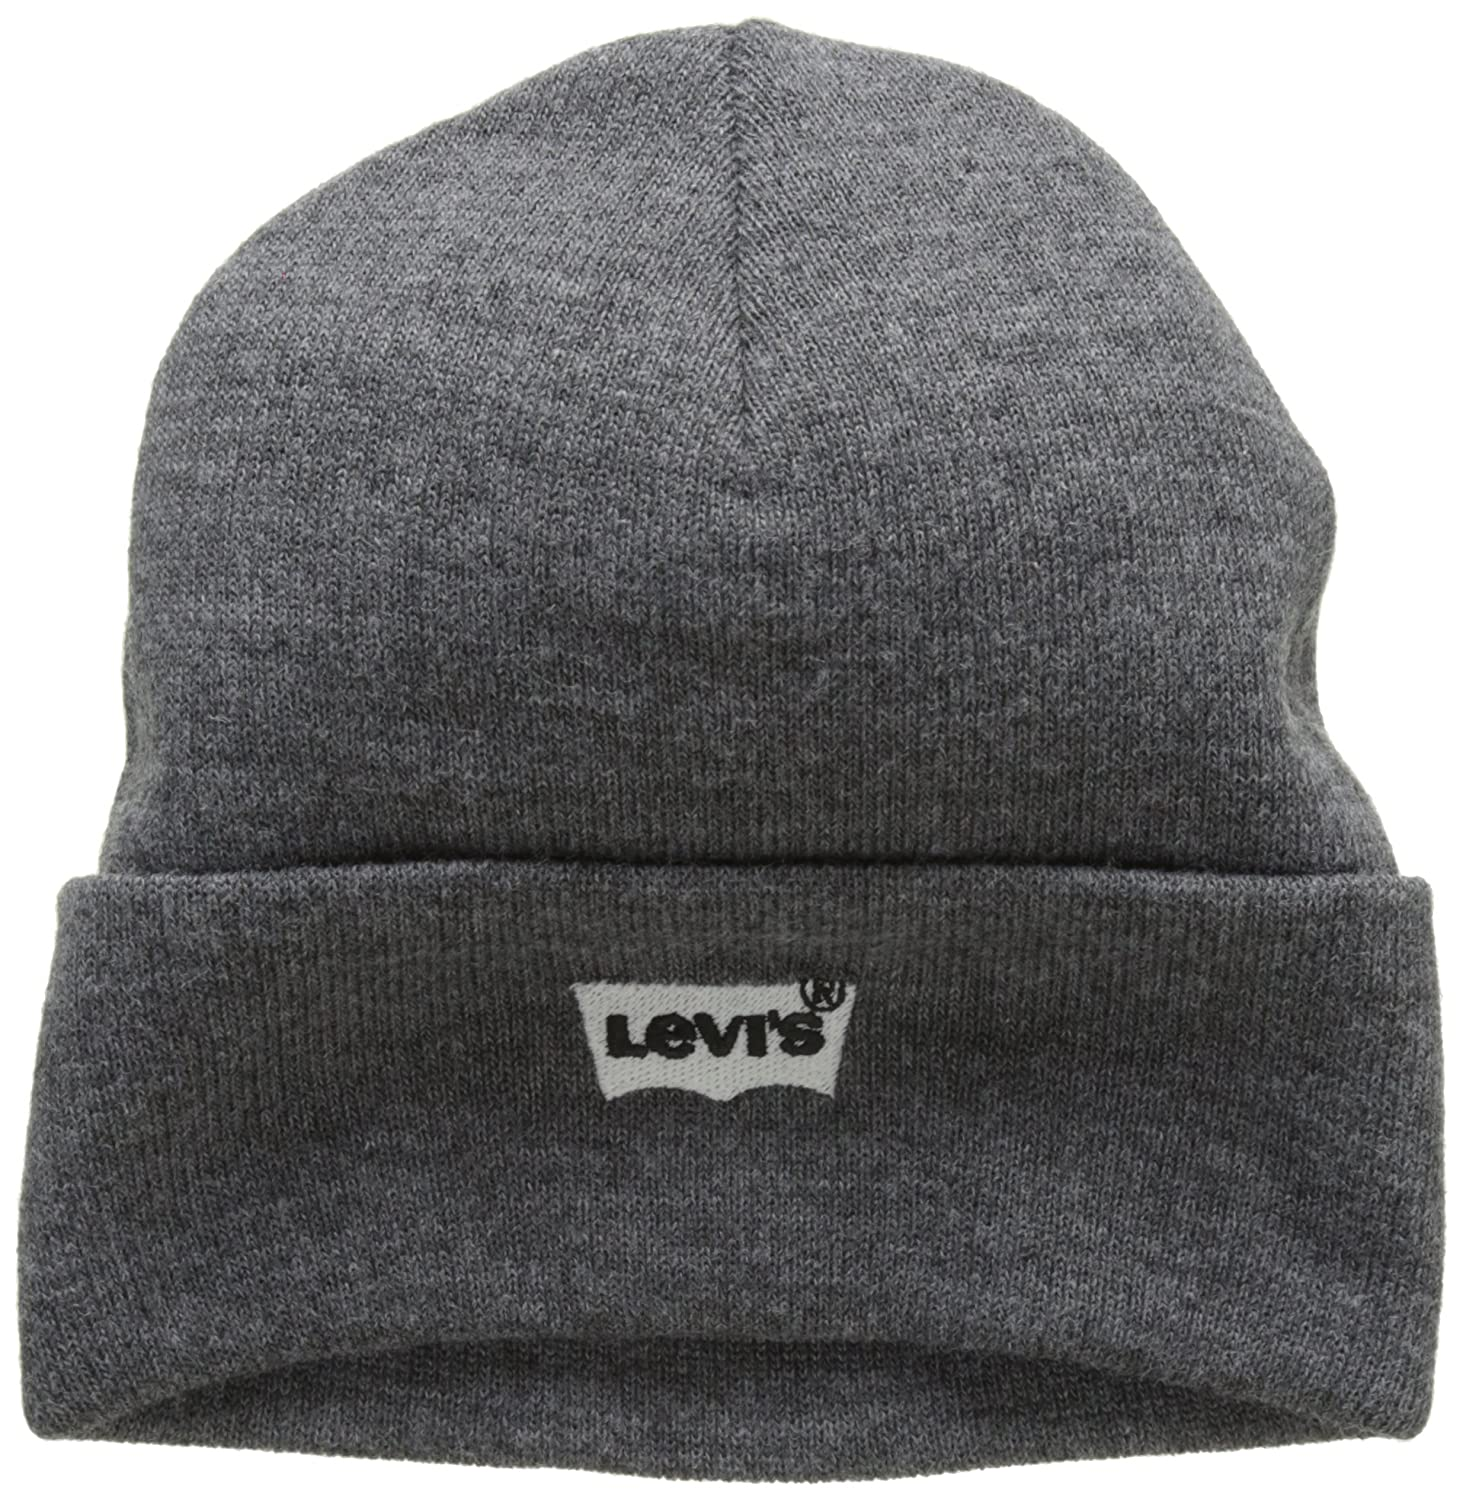 Levi's Batwing Embroidered Slouchy Beanie, Cuffia Uomo Blu (Navy Blue 17) Levi' s 225984-11